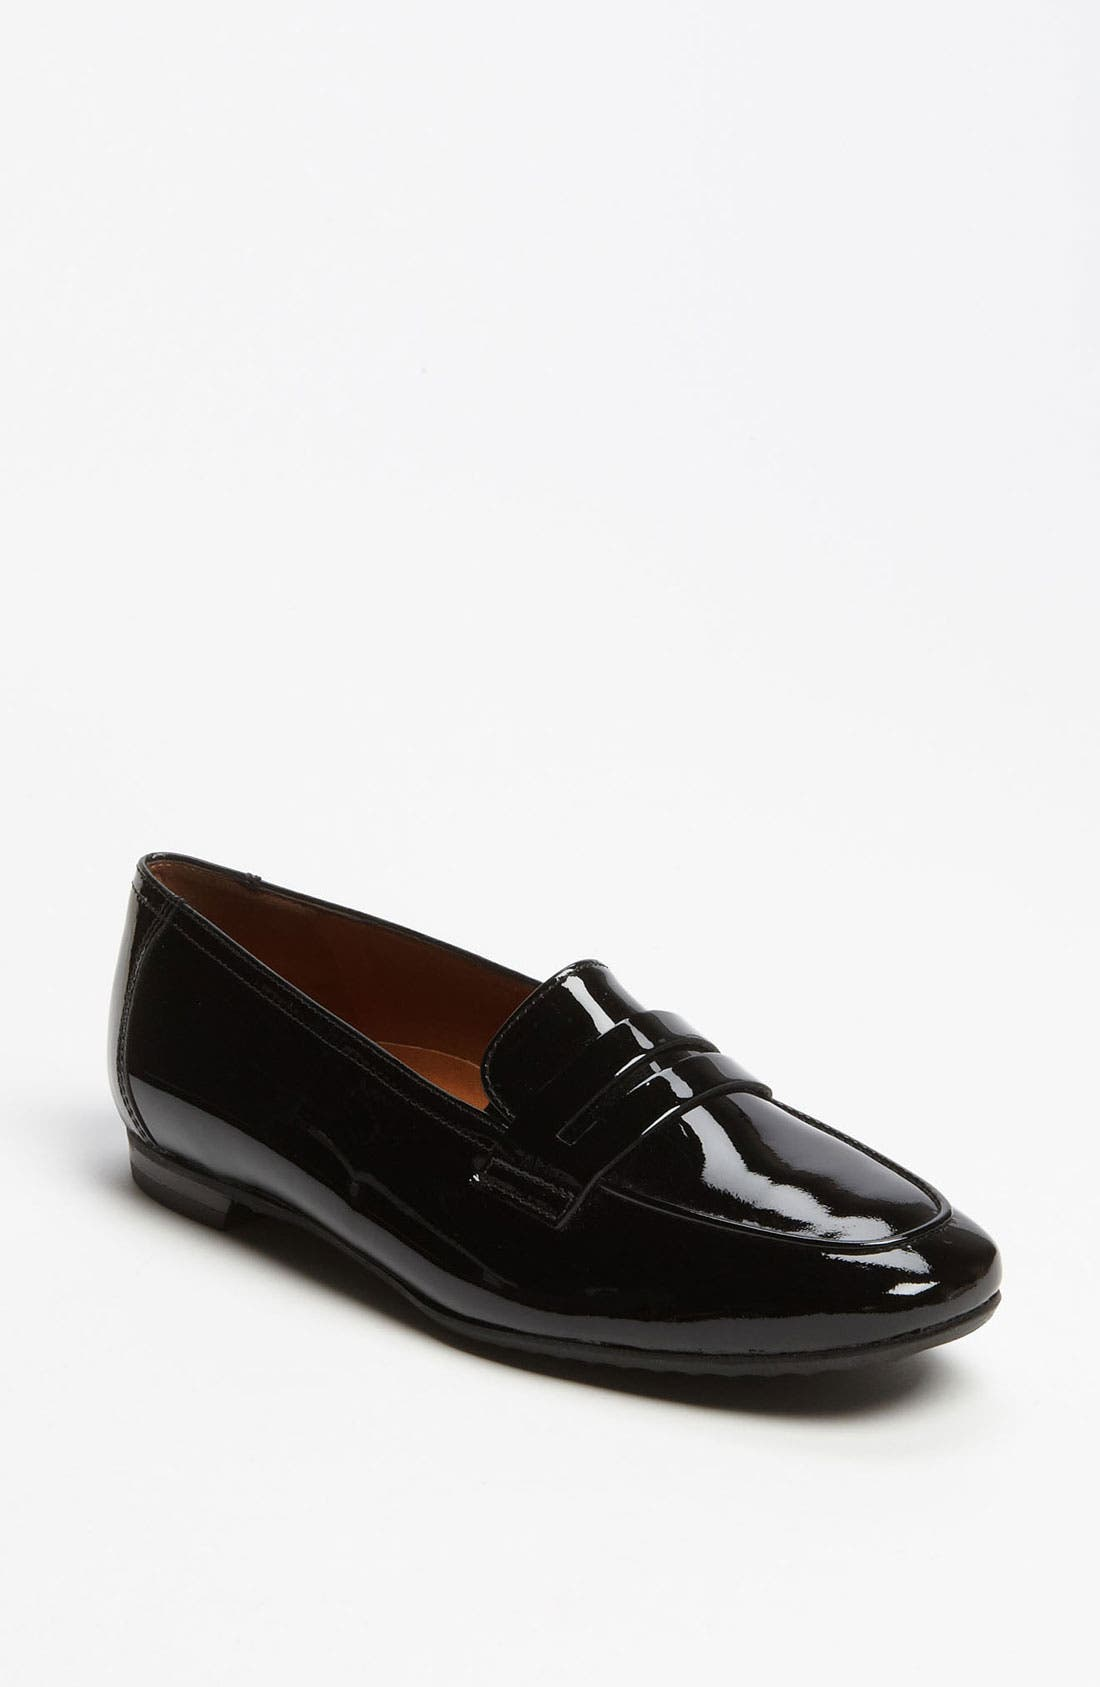 Alternate Image 1 Selected - Paul Green 'Nicky' Loafer